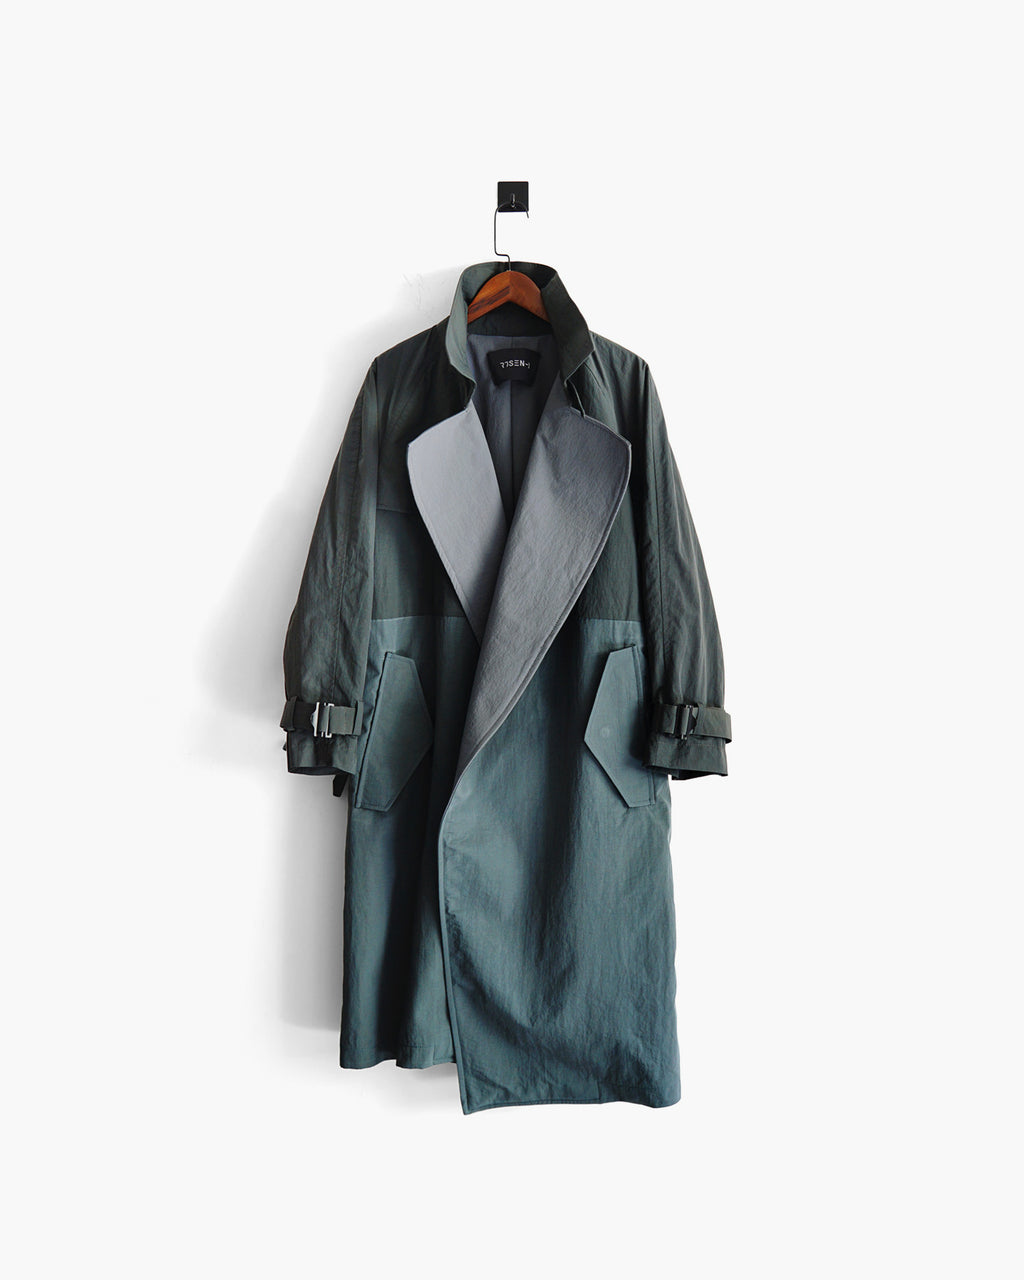 ROSEN-X Atlas Coat in Two-Tone Nylon Laminate Sz 1